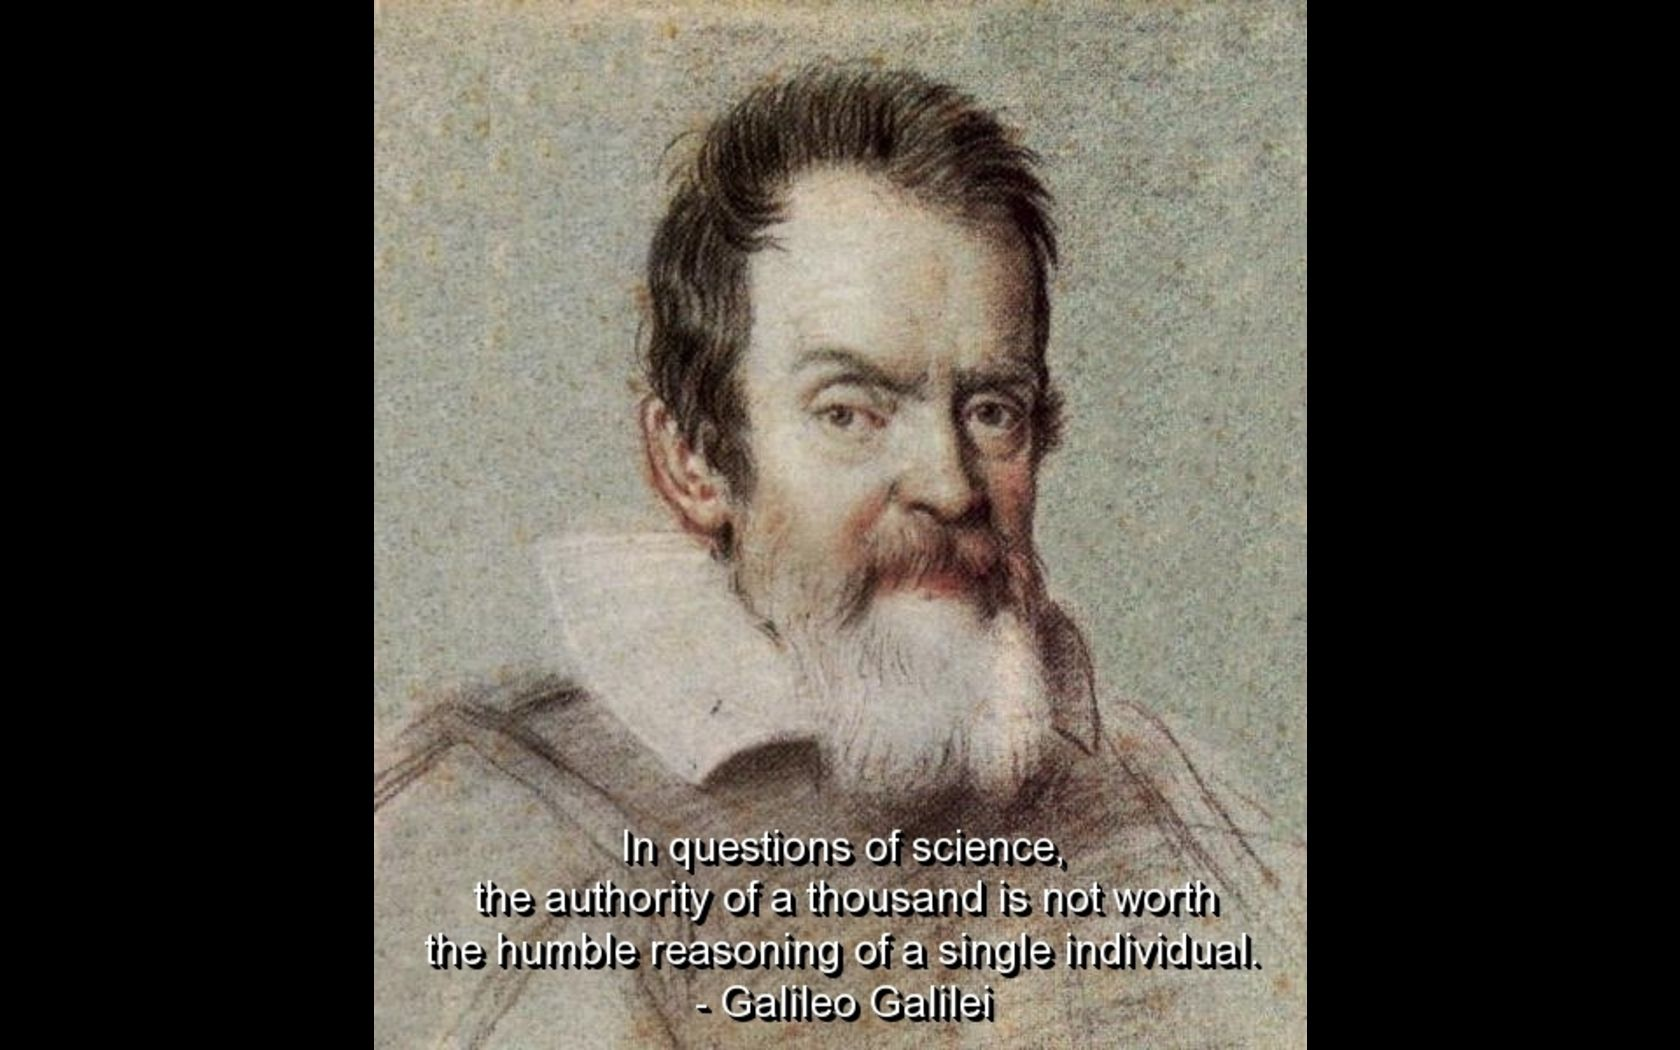 brainy quotes plato Galileo Galilei Quotes Sayings Meaningful Brainy Science Deep On